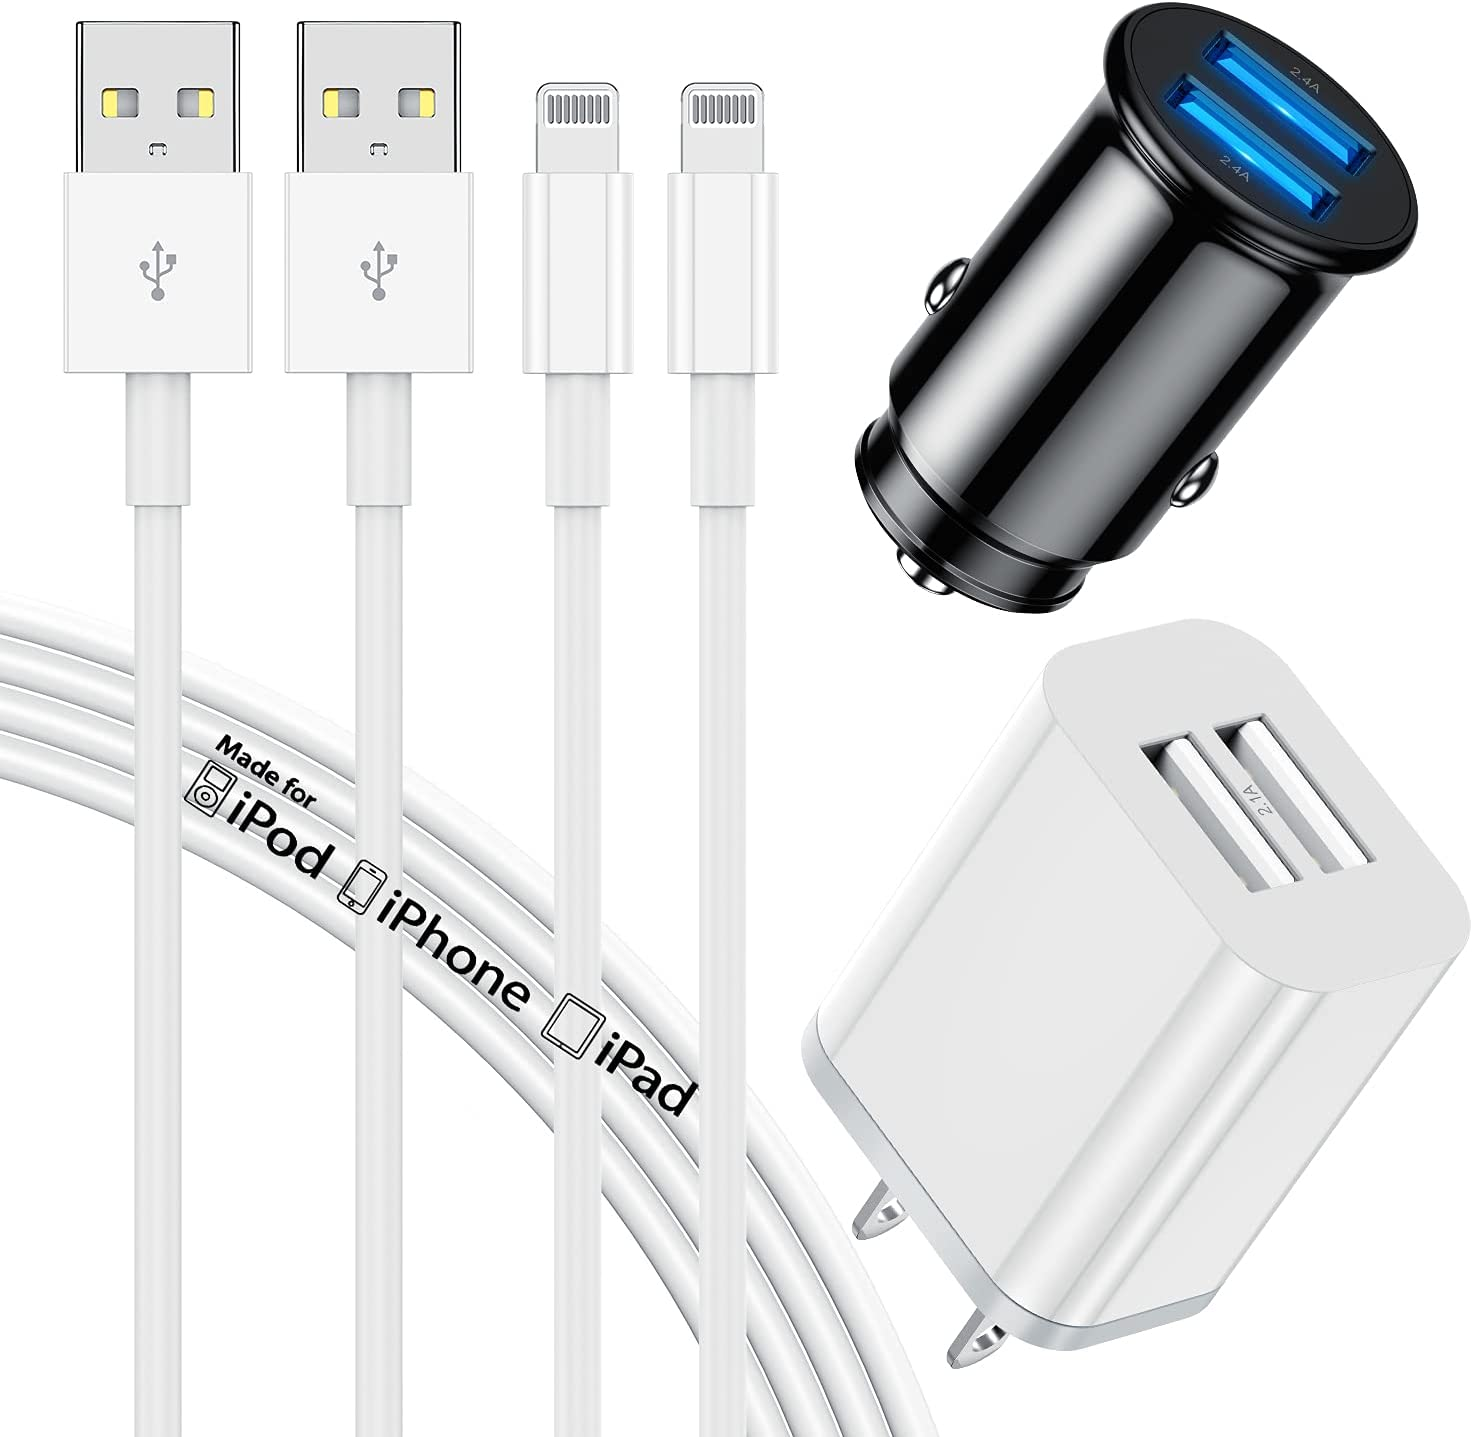 iPhone Car Charger, Apple MFi Certified 6ft Lightning to USB Charging Cable(2pack) with Dual Port USB Wall & Car Charger Adapter(24W/4.8A) for Apple iPhone 11 12 Pro Max X Xs XR 8 7 6s 5 SE, iPad Pro